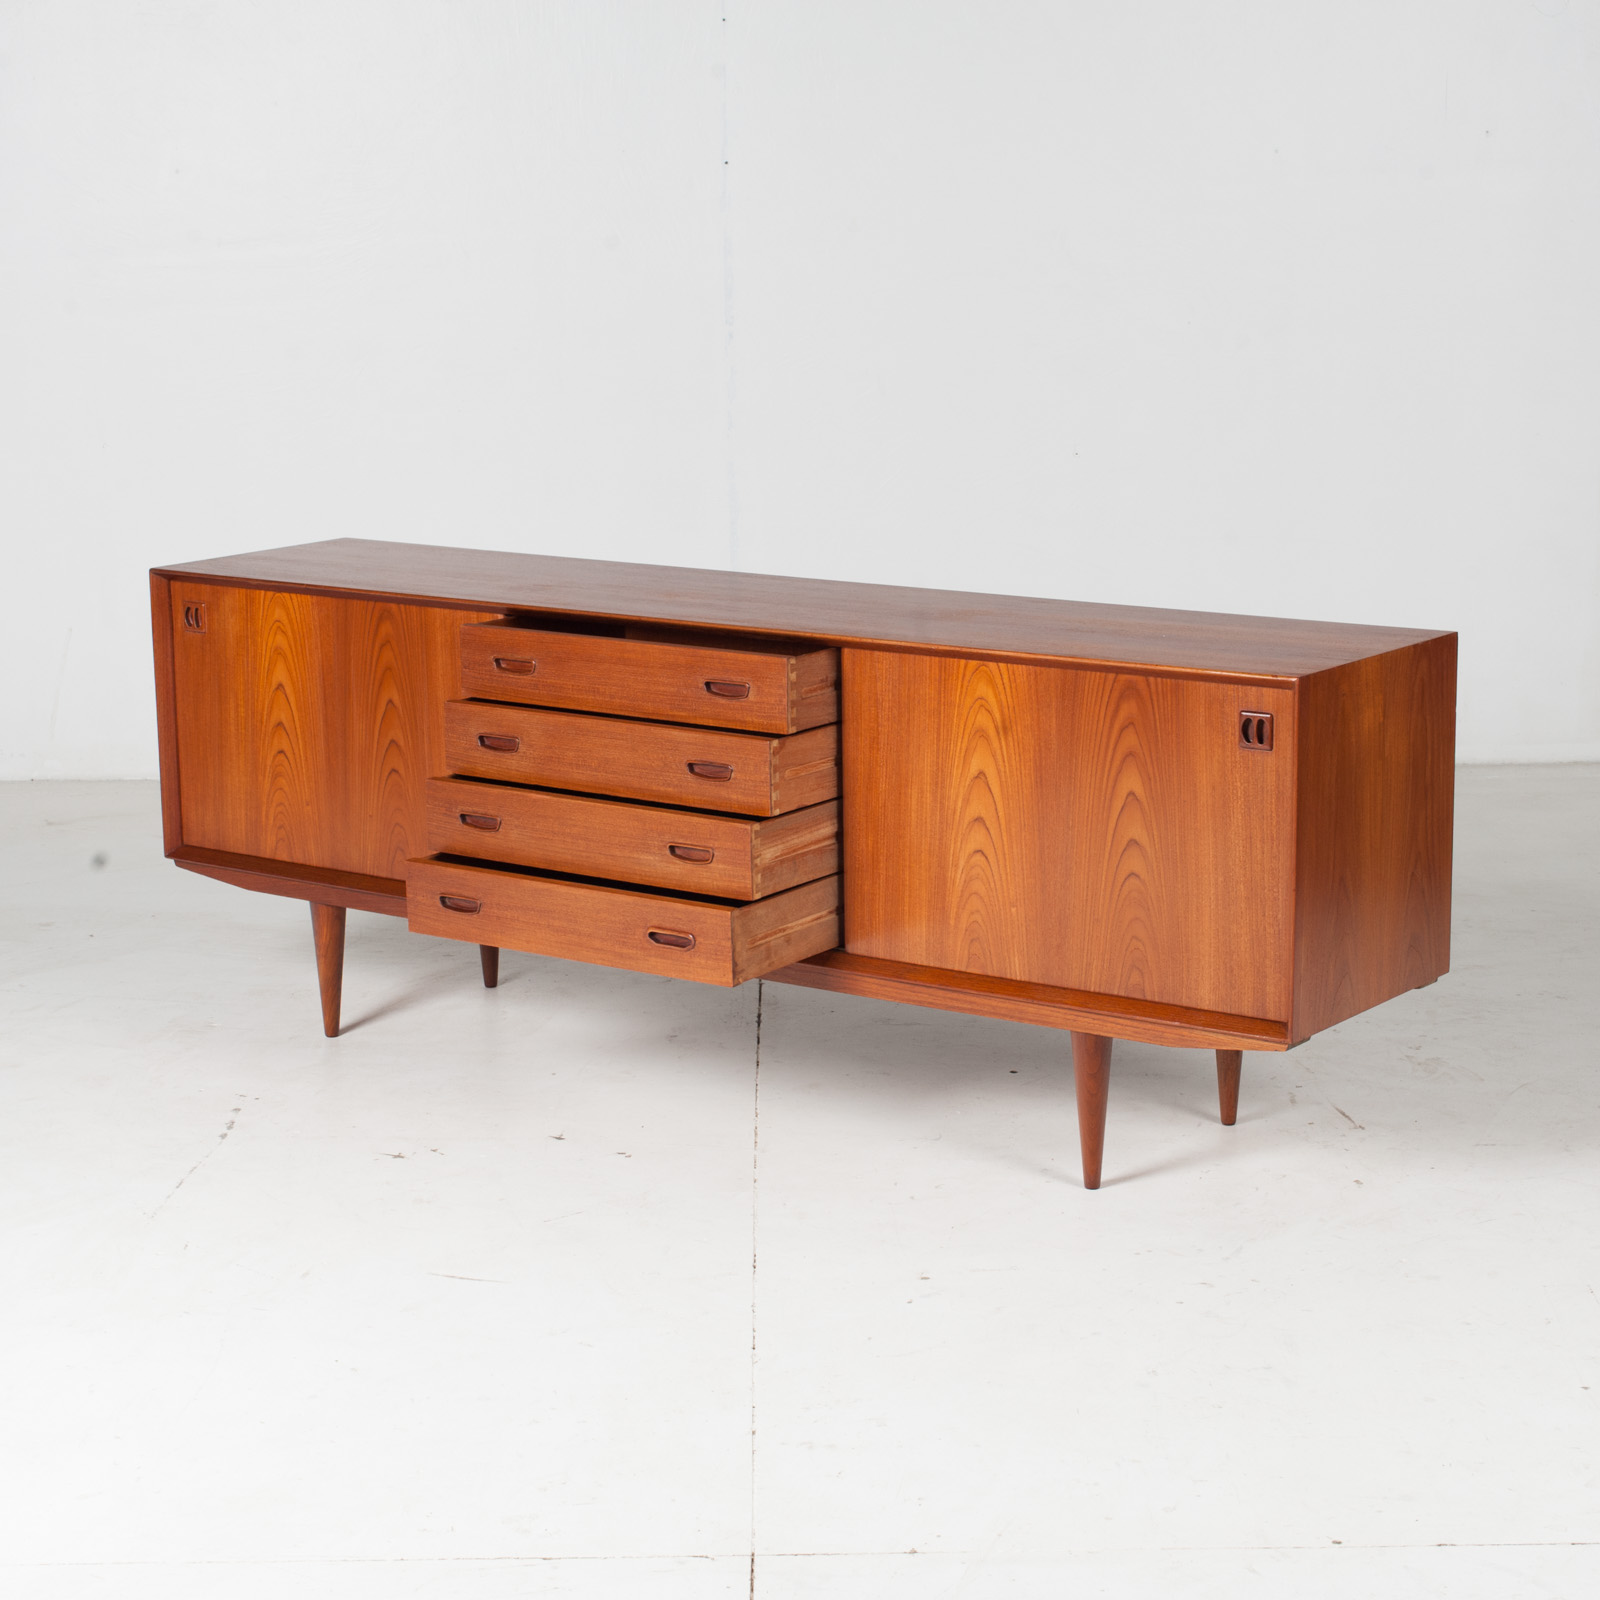 Sideboard By Clause And Son In Teak, 1960s, Denmark6